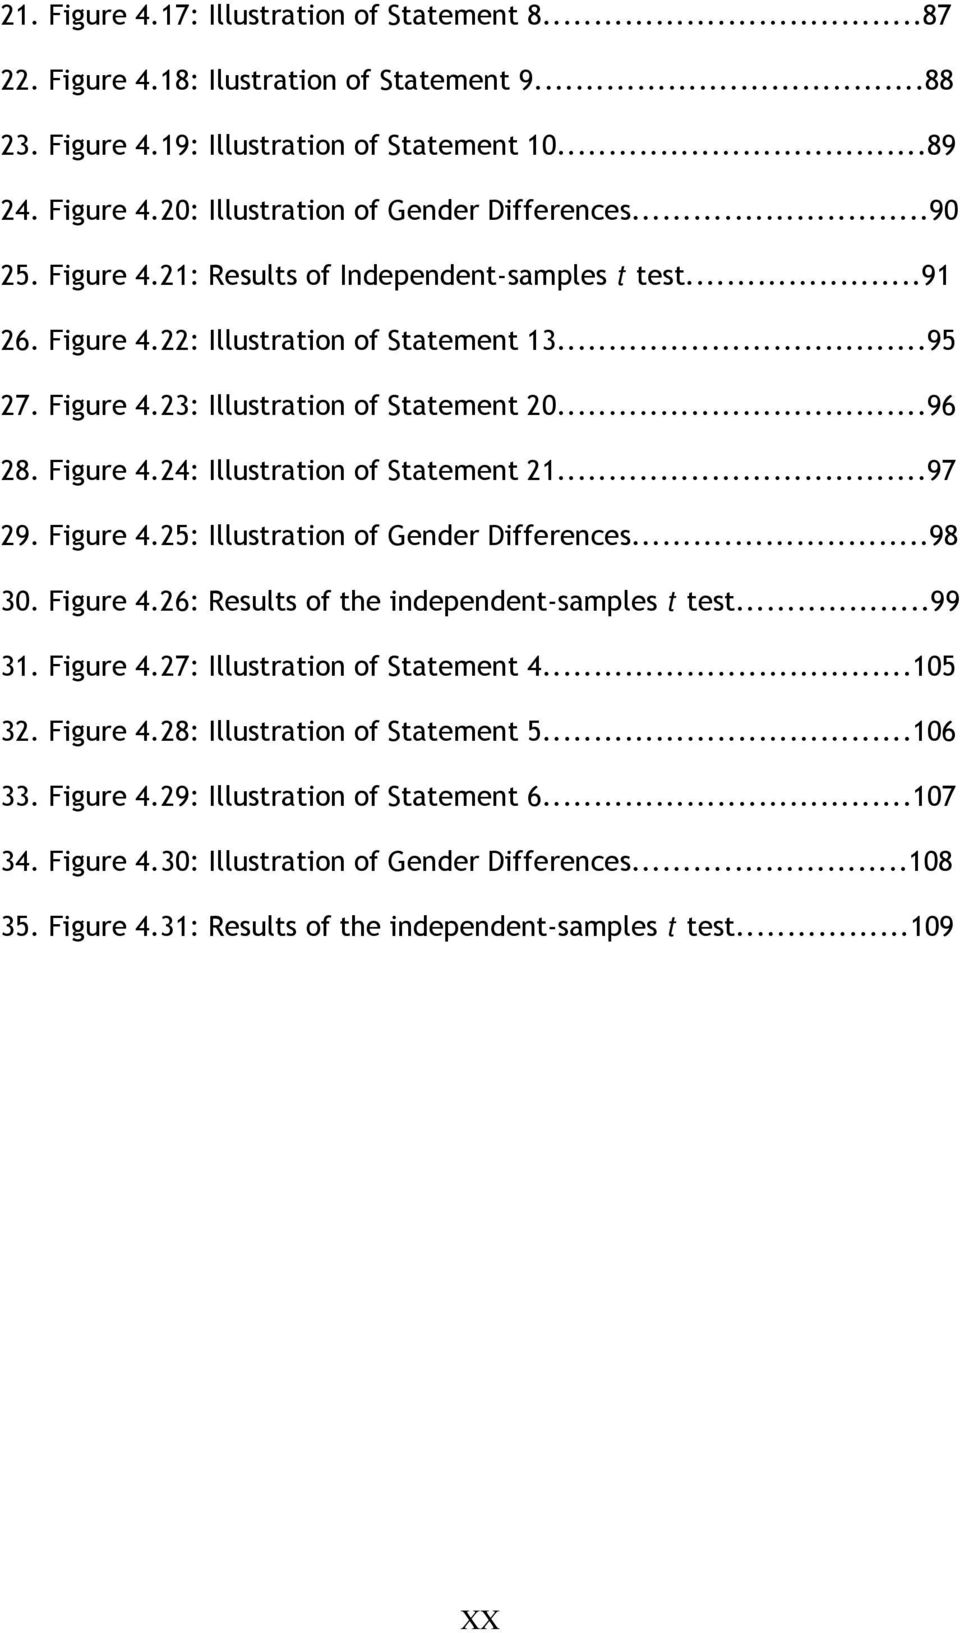 ..97 29. Figure 4.25: Illustration of Gender Differences...98 30. Figure 4.26: Results of the independent-samples t test...99 31. Figure 4.27: Illustration of Statement 4...105 32. Figure 4.28: Illustration of Statement 5.